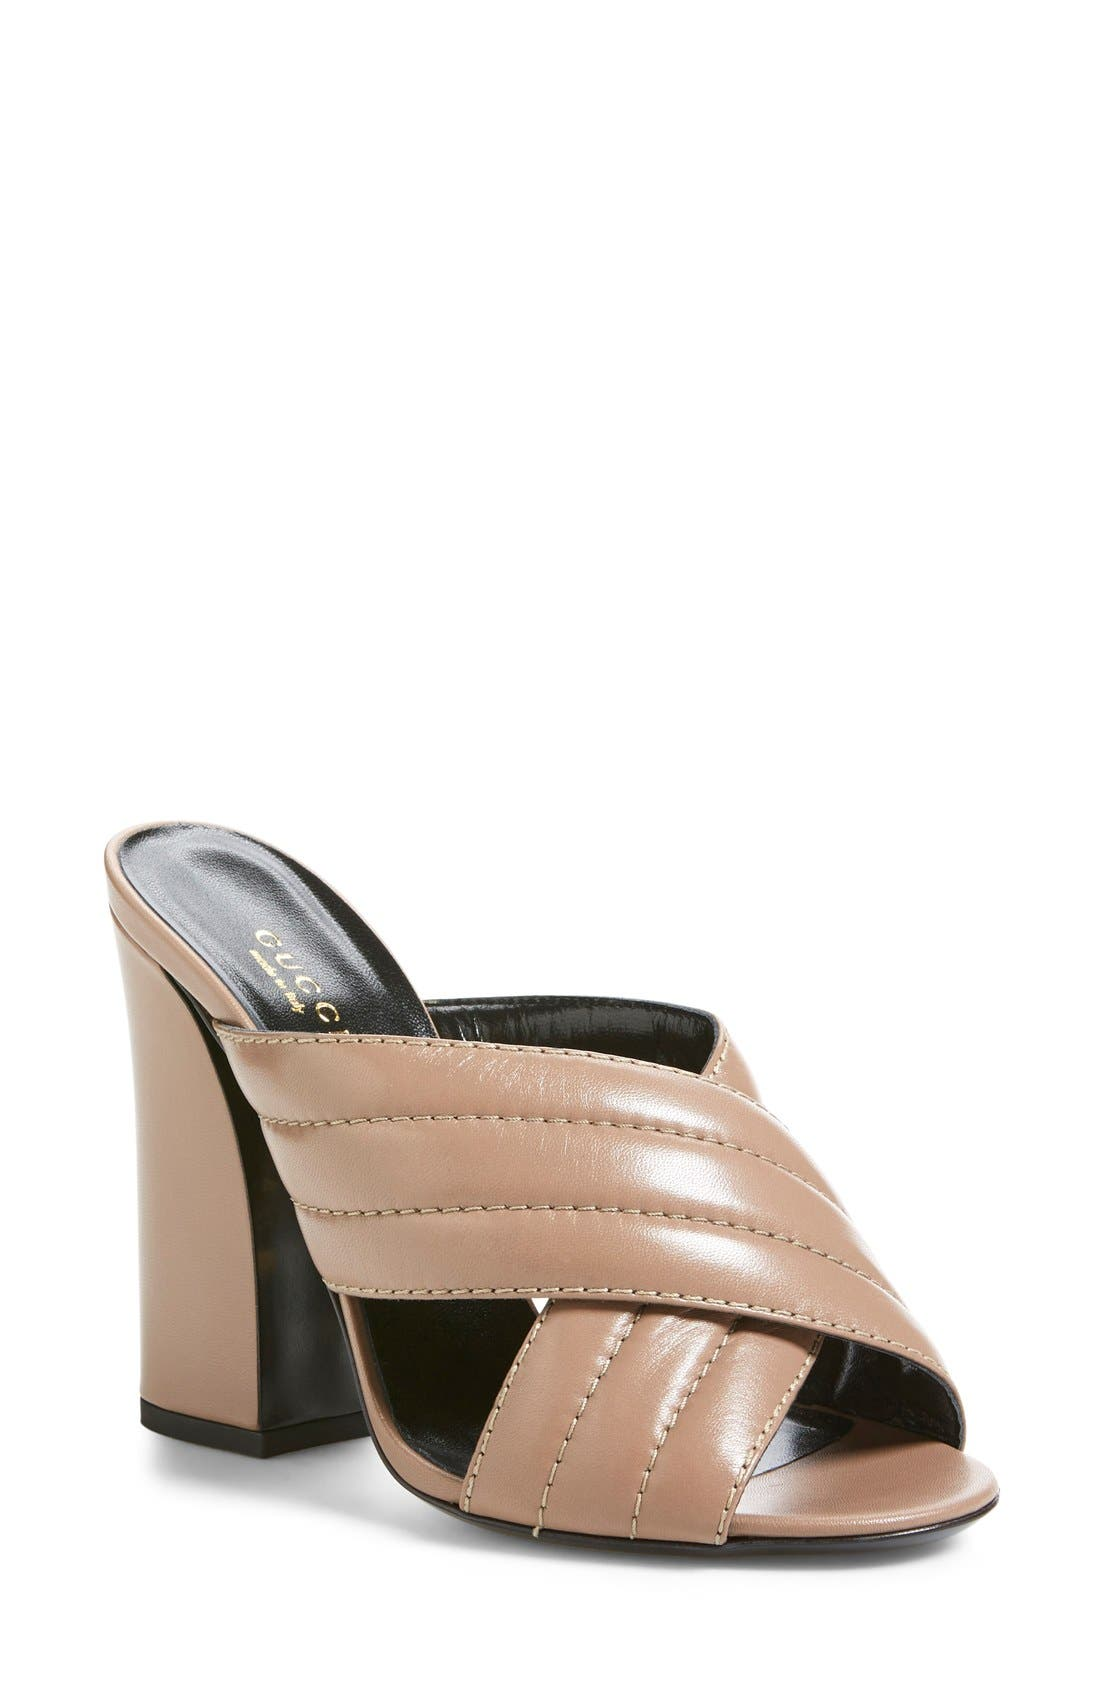 'Sylvia' Sandal, Main, color, 250